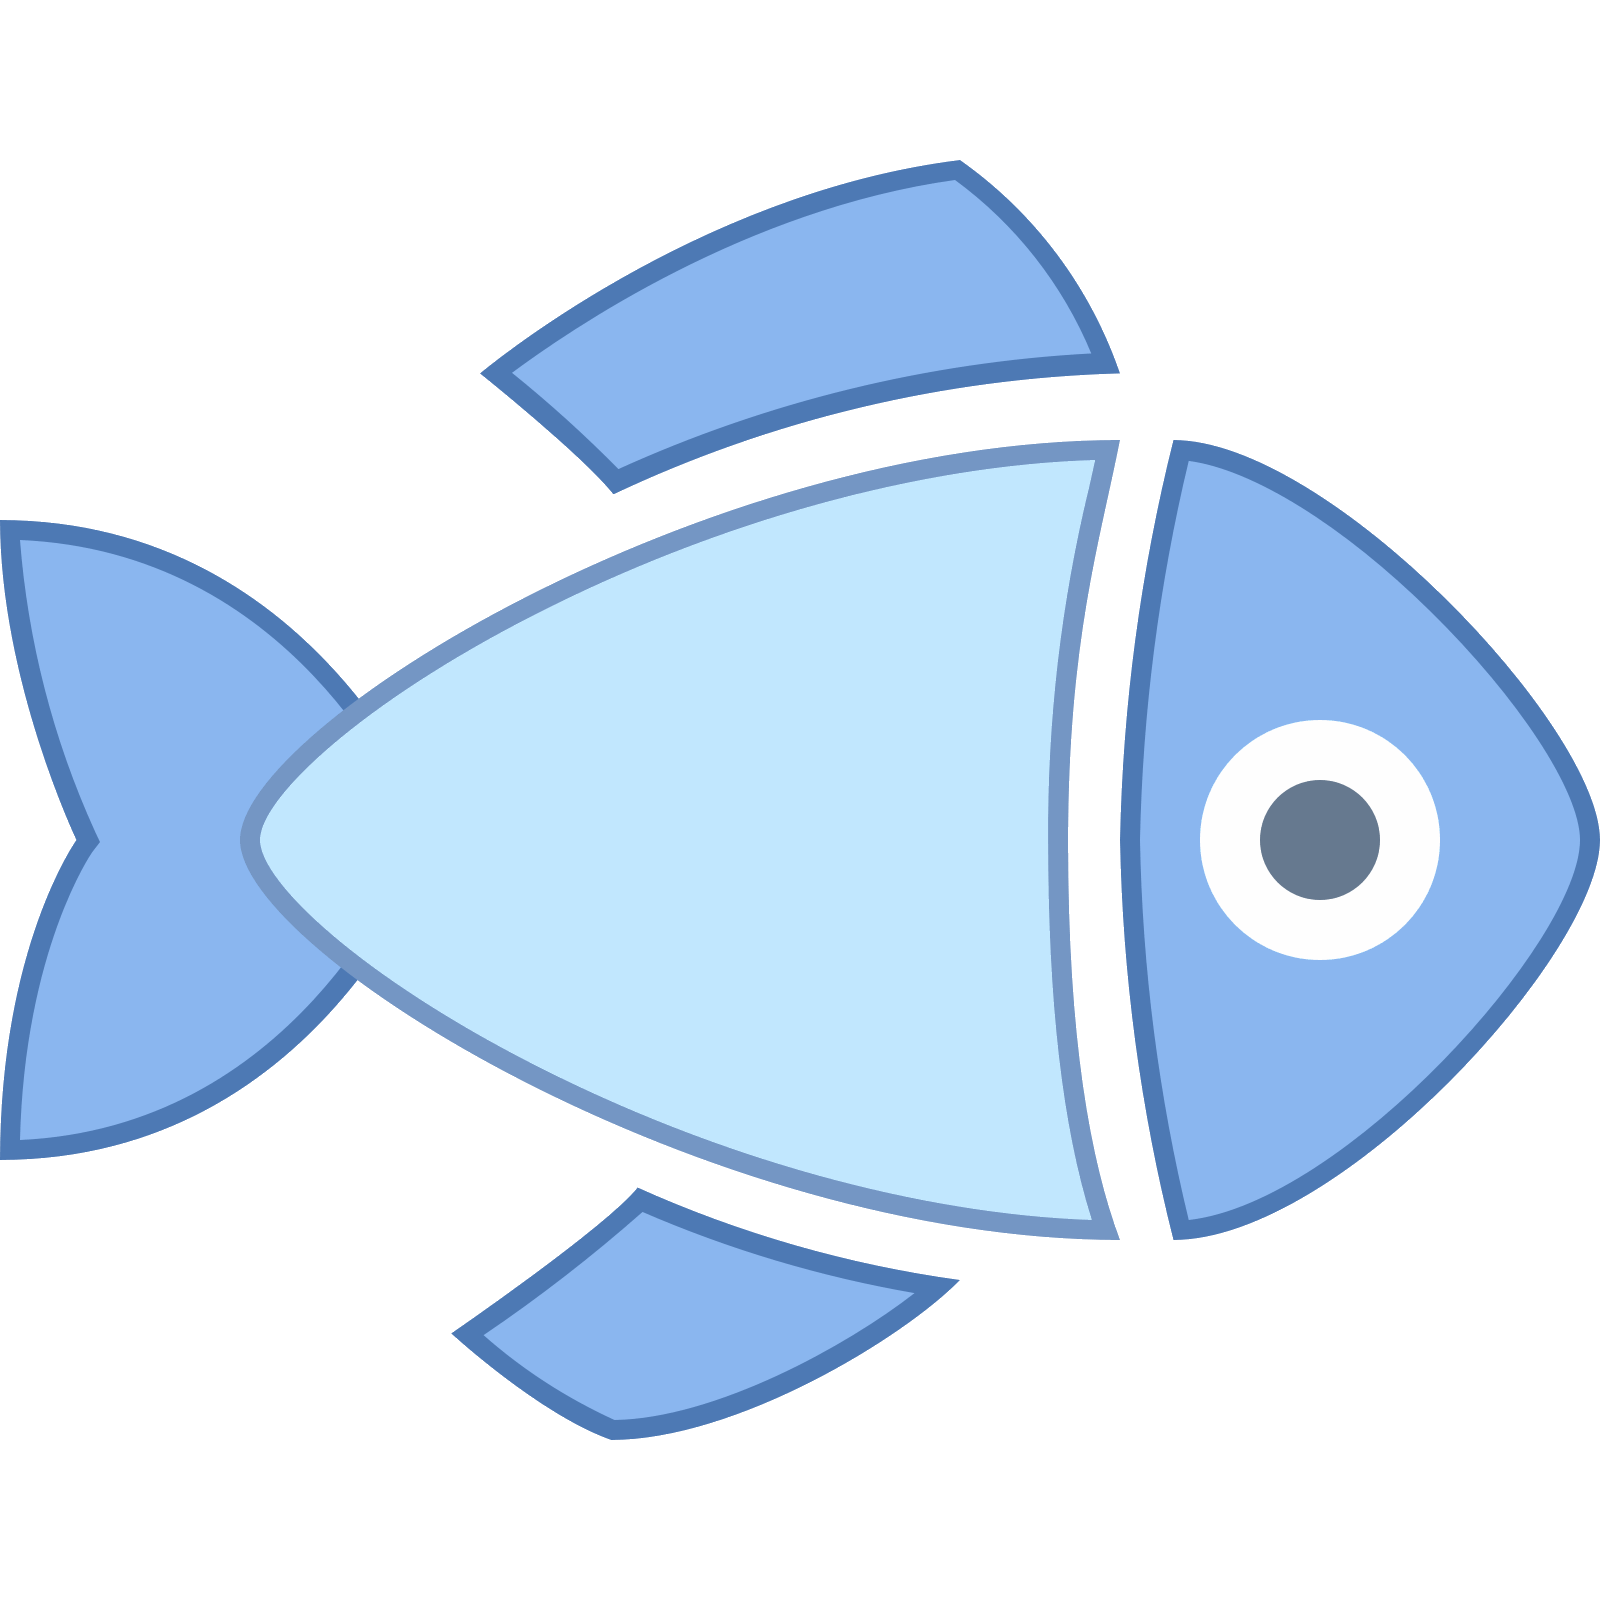 Fish cartoon png. Icona dressed download gratuito